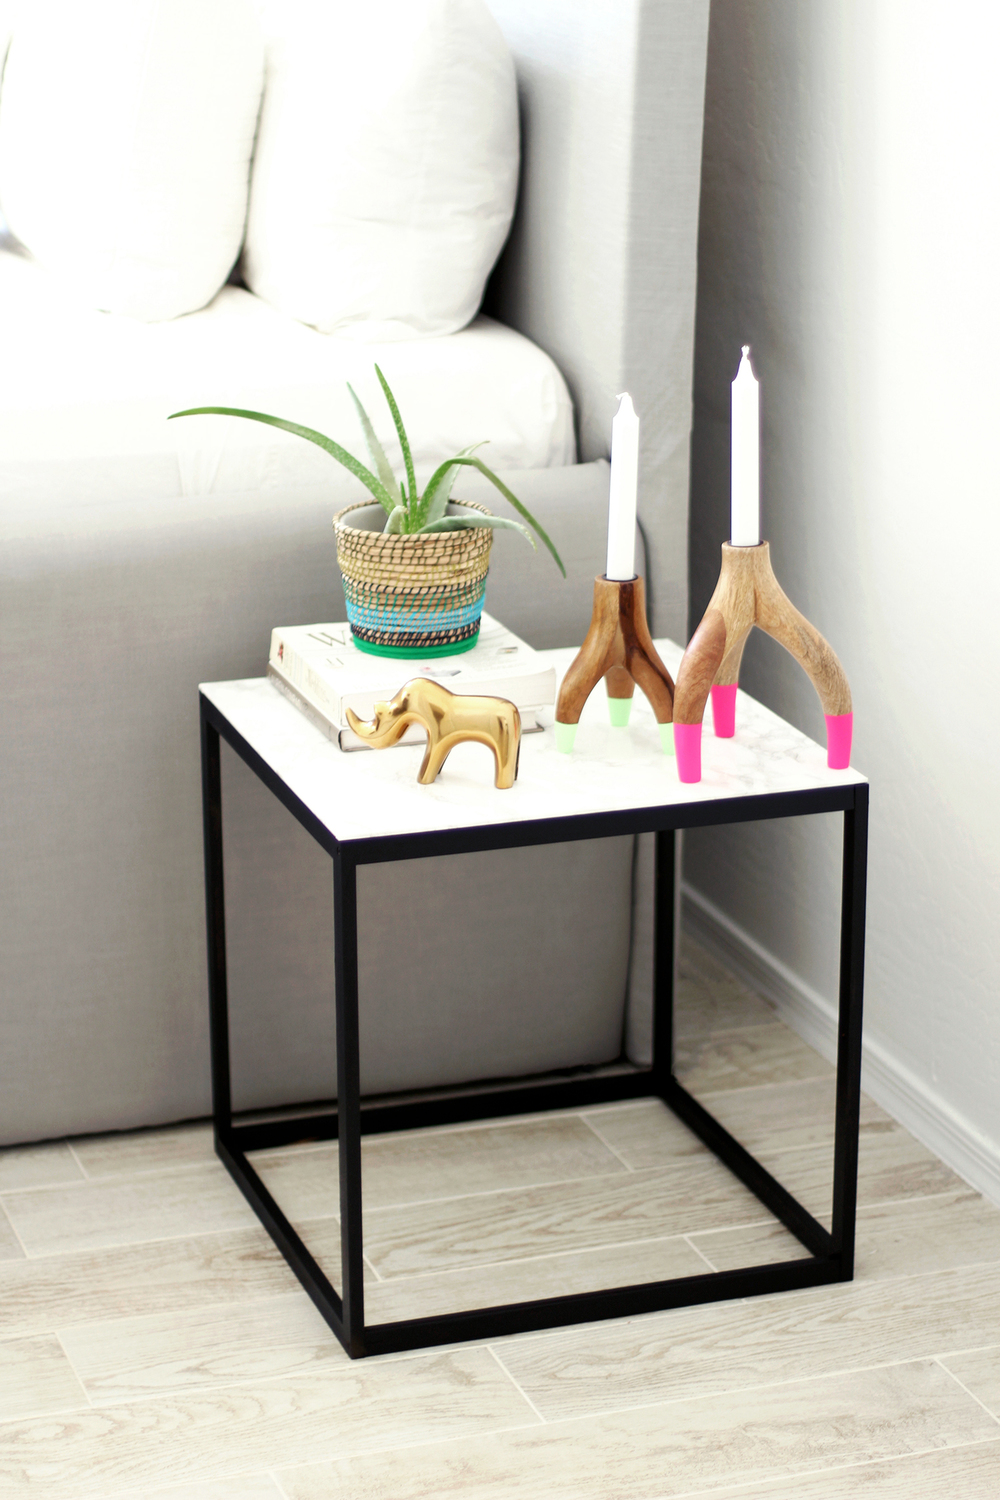 West Elm Inspired Diy Marble Table Kristi Murphy Do It